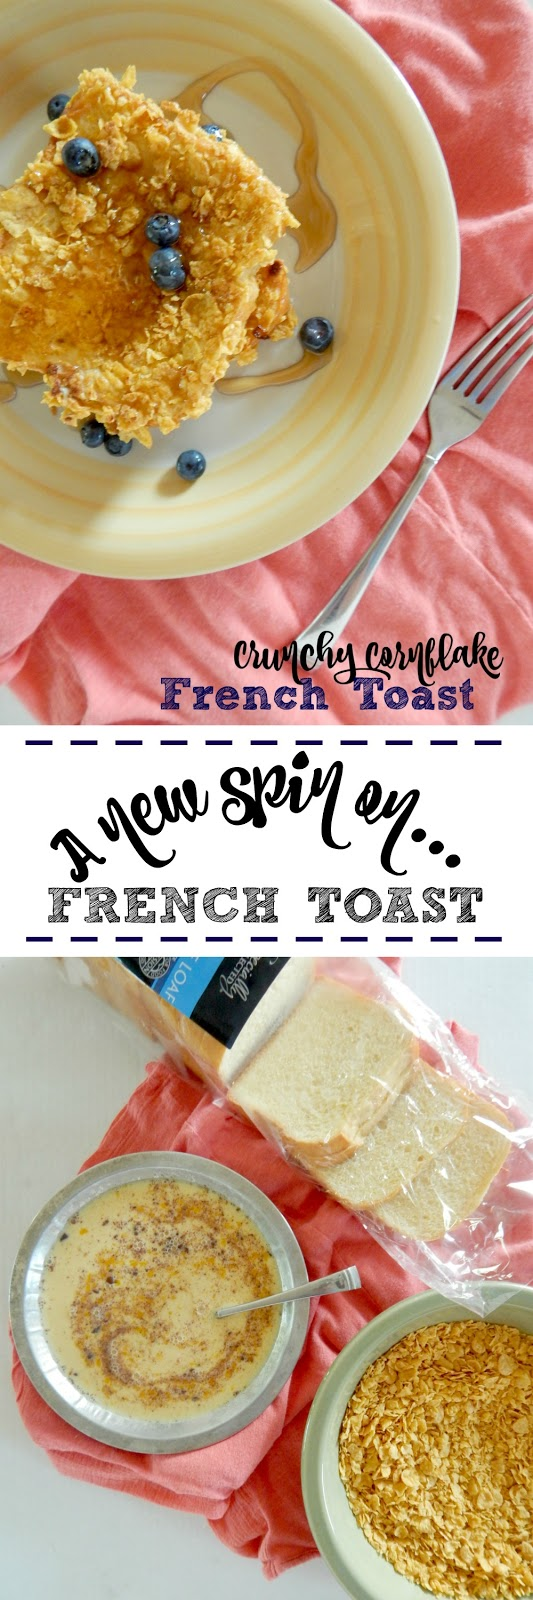 Crunchy Cornflake French Toast...a fun twist on the traditional breakfast!  Kids love this crunchy version. (sweetandsavoryfood.com)